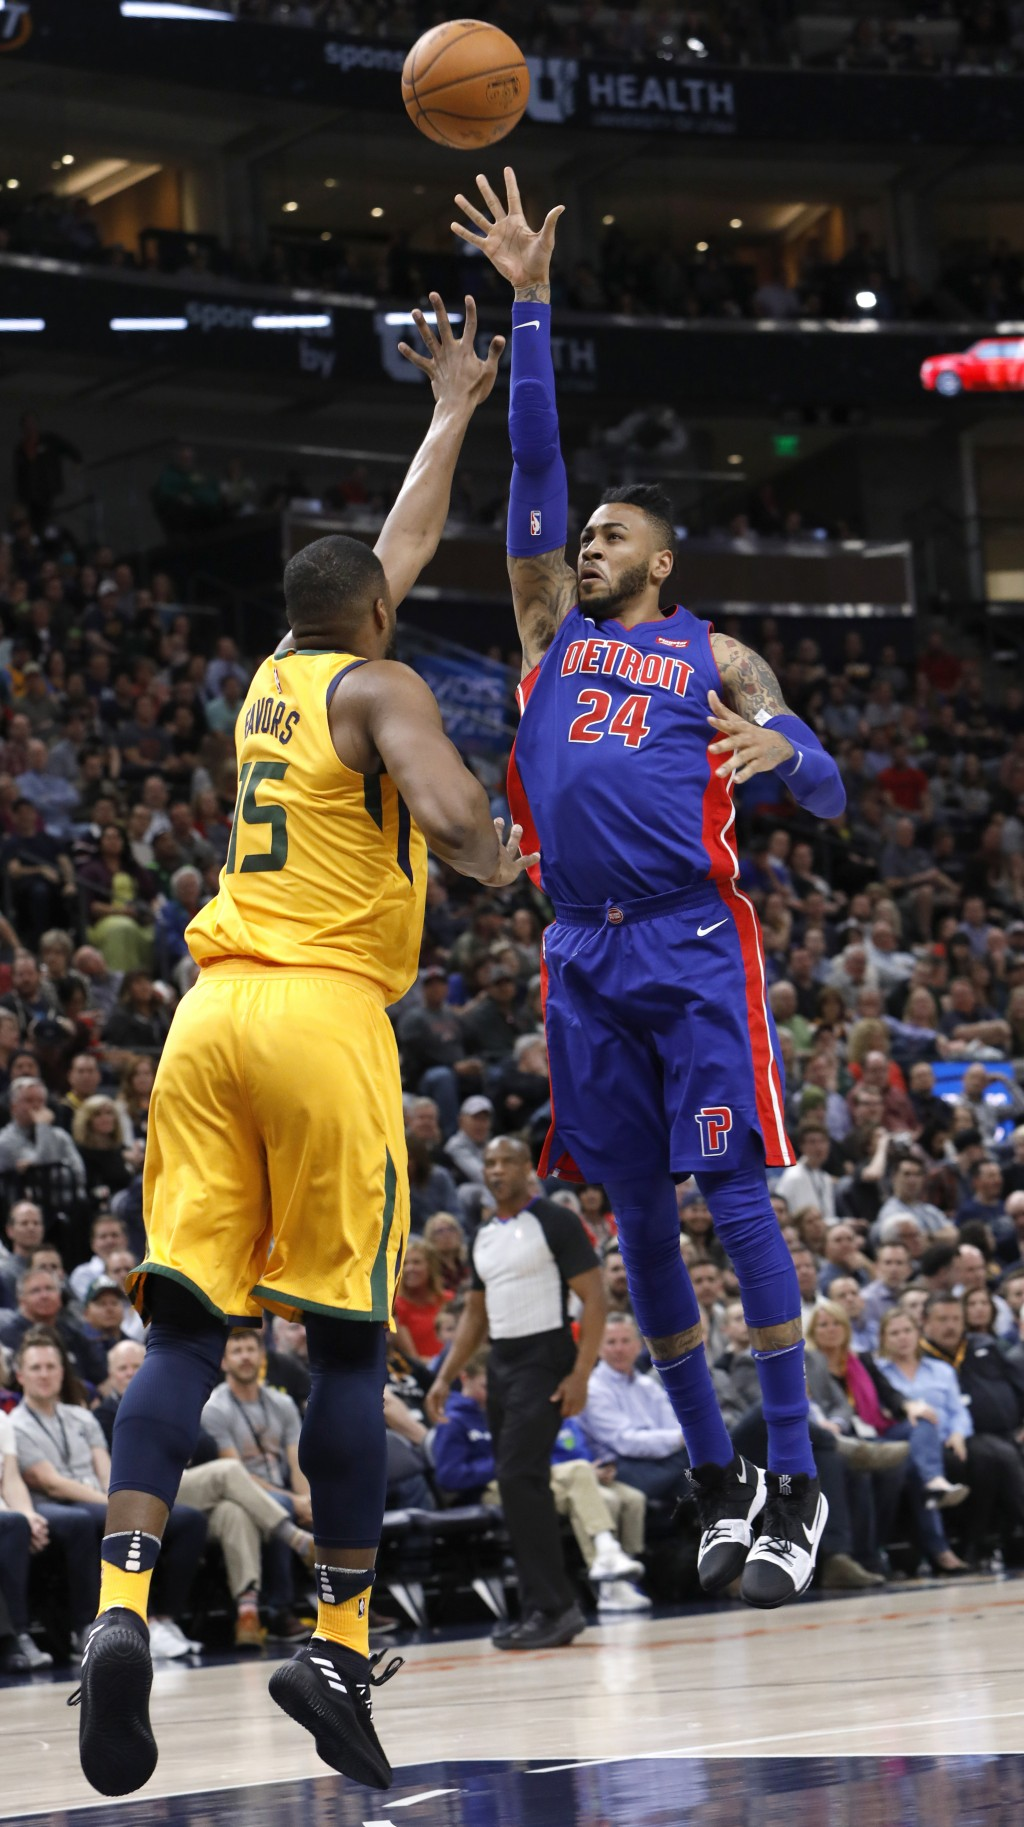 Detroit Pistons' Eric Moreland (24) shoots the ball as Utah Jazz's Derrick Favors (15) defends in the first half of an NBA basketball game on Tuesday,